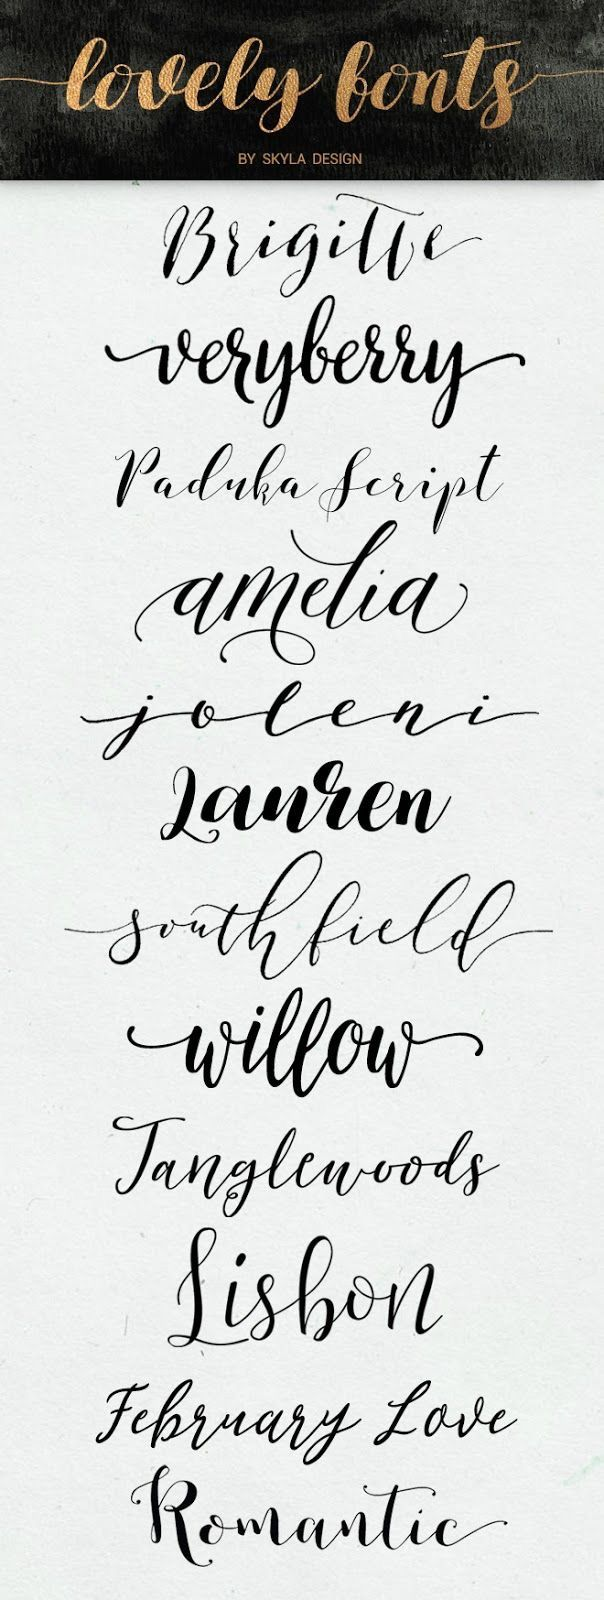 Pin By Cascadejoinery On Cnc Projects Tattoo Script Fonts Modern Calligraphy Fonts Free Calligraphy Fonts